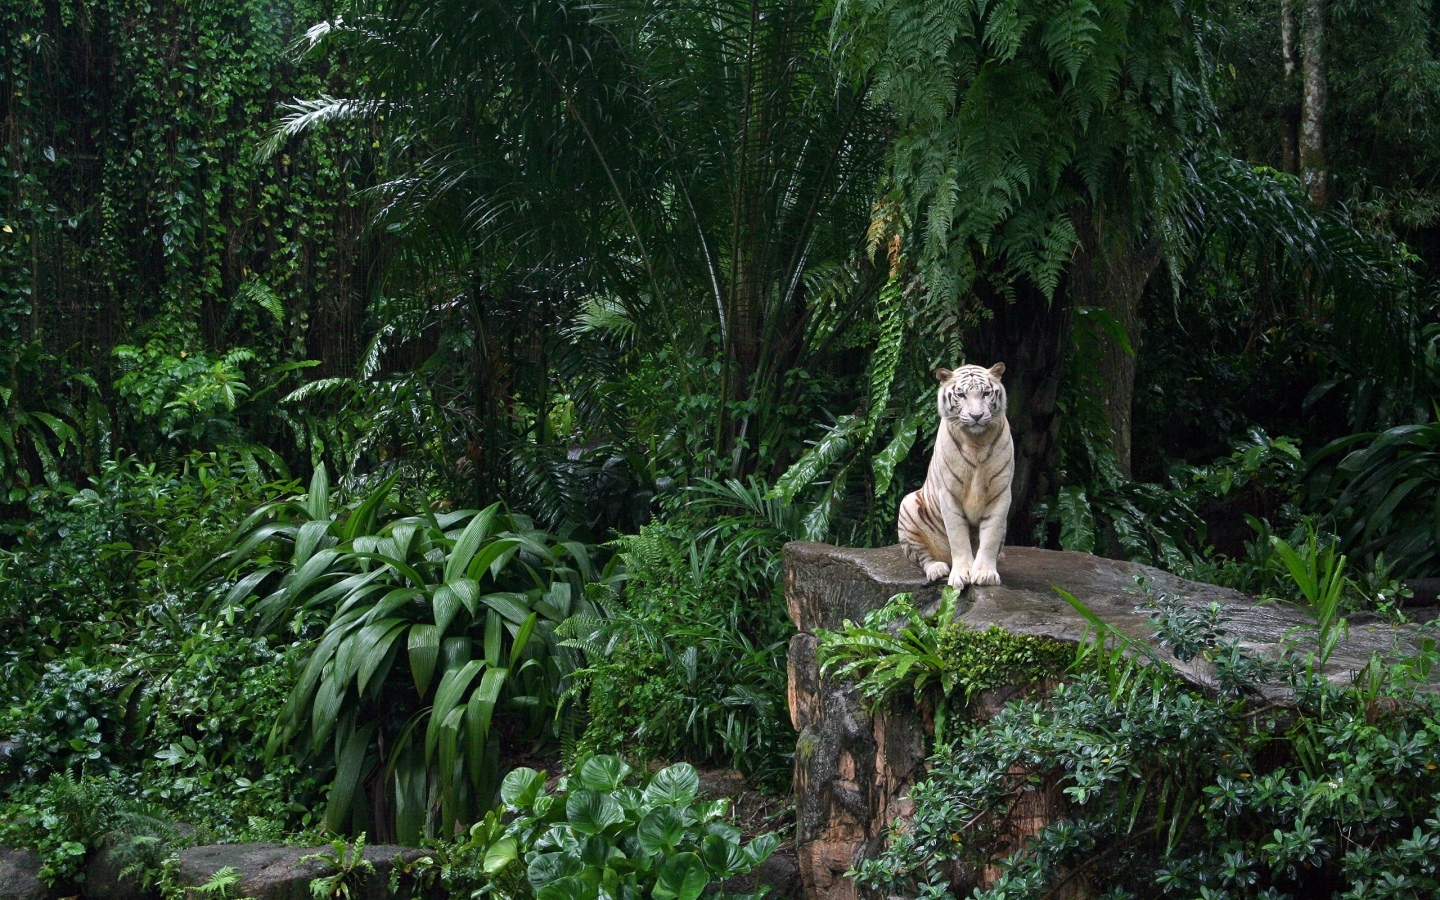 http://2.bp.blogspot.com/-0bBjVPcv6RI/TlsKIpO5U1I/AAAAAAAAAAk/iGgaFlNSCEg/s1600/White-Tiger-In-Jungle_1440x900_1363.jpg